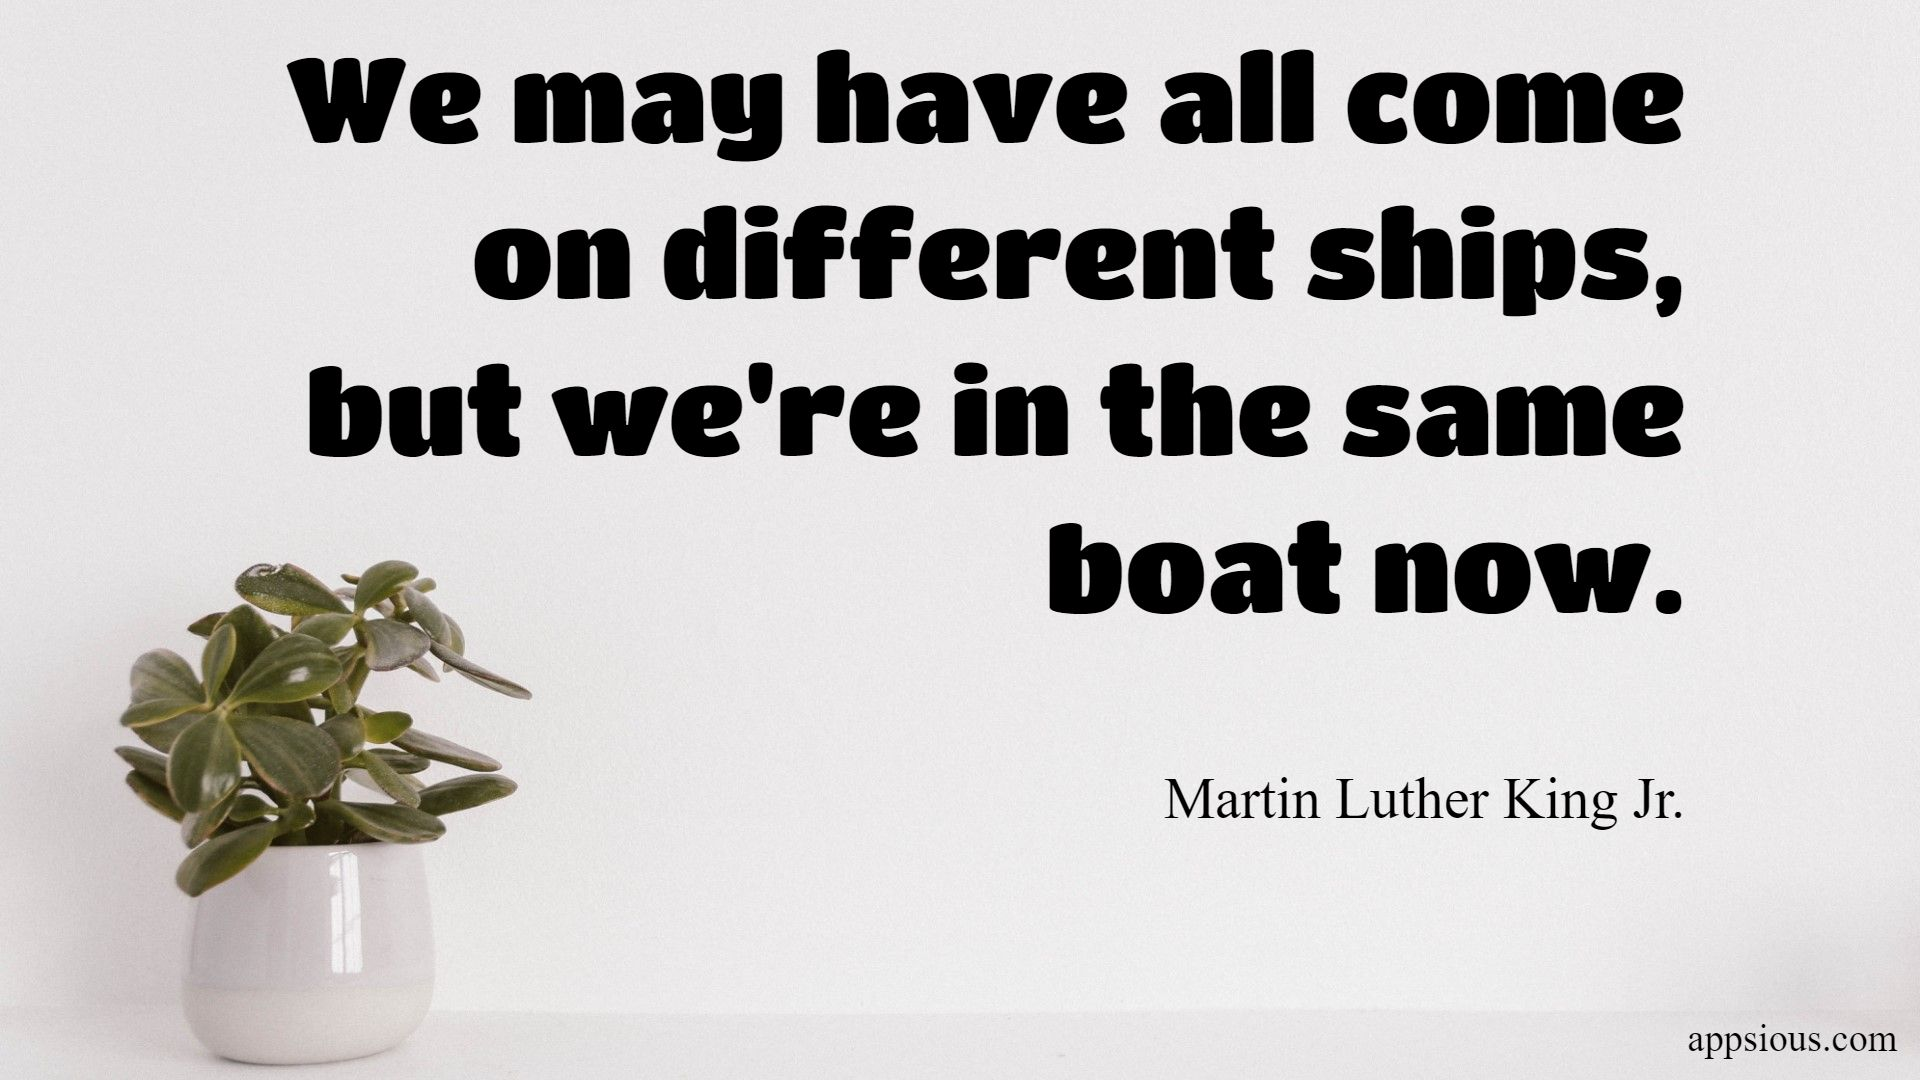 We may have all come on different ships, but we're in the same boat now.